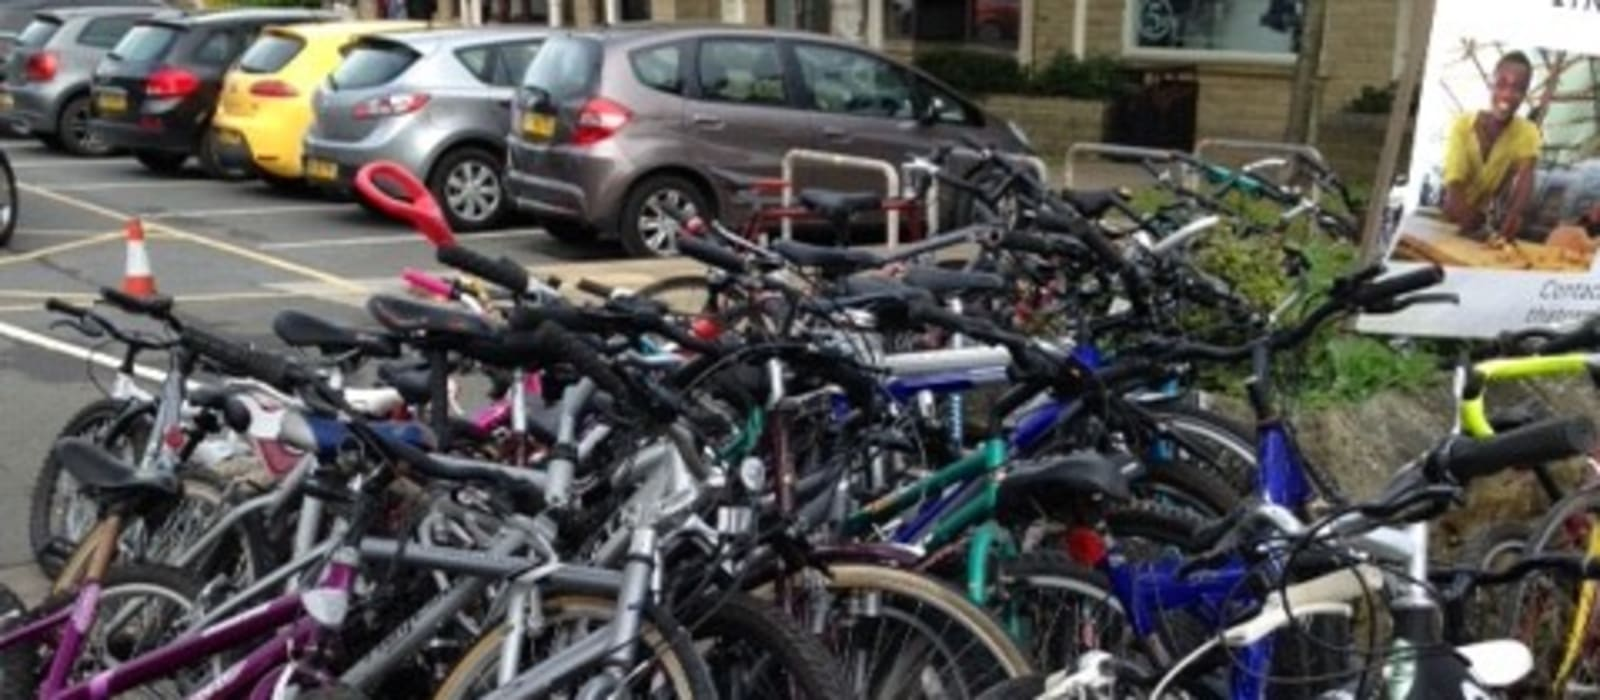 Organise a bike collection day